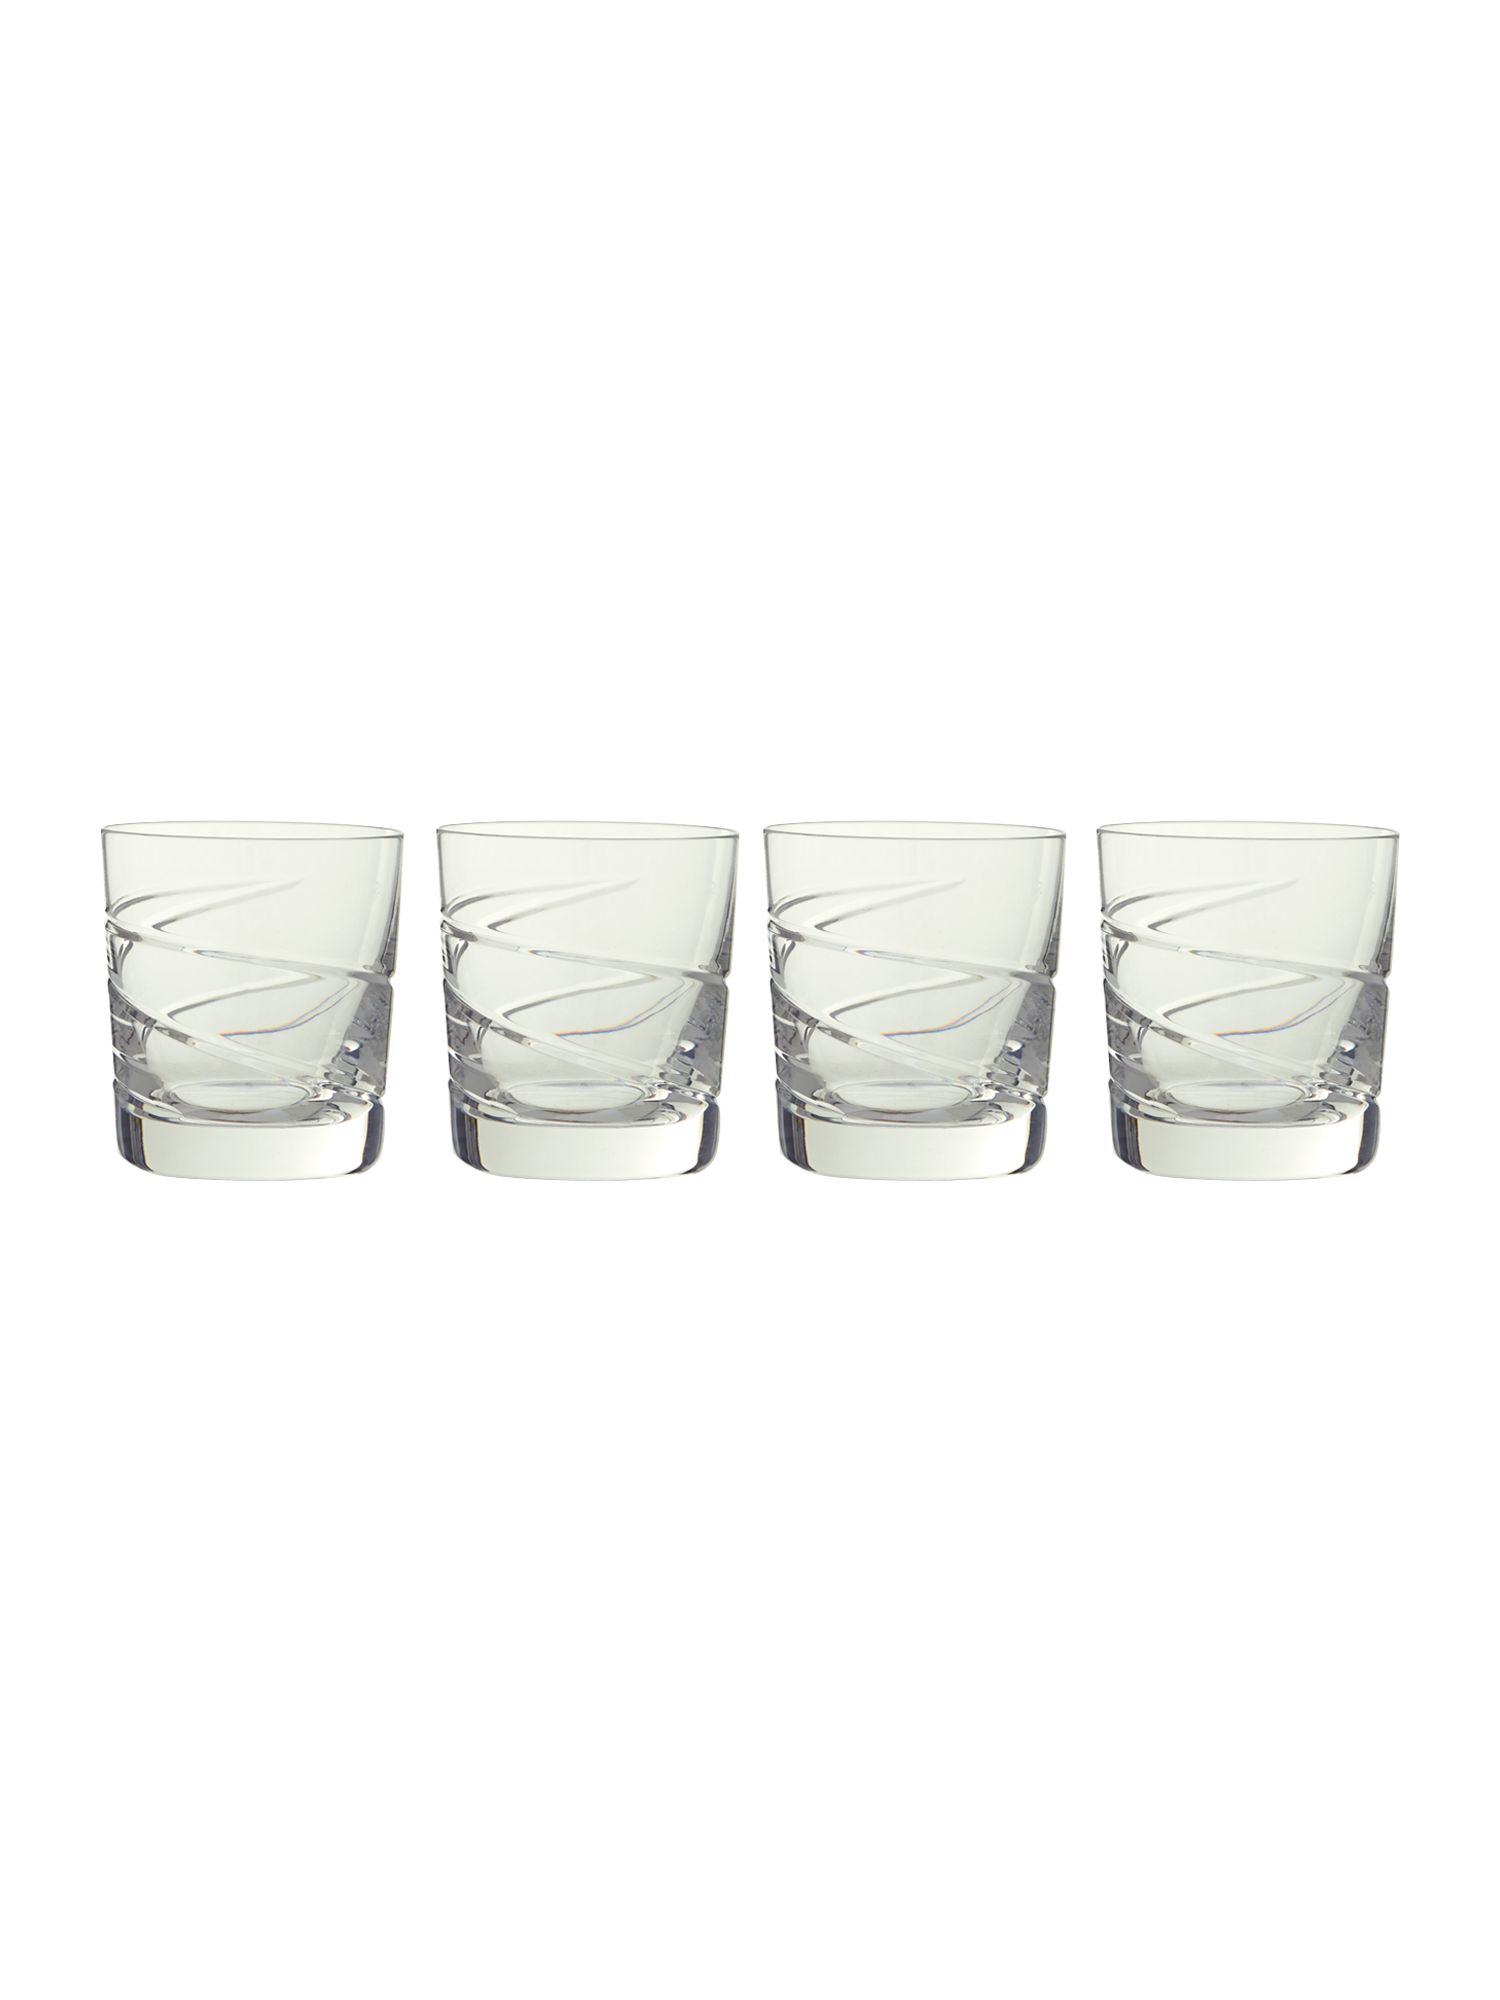 Swirl tumbler glasses, box of 4